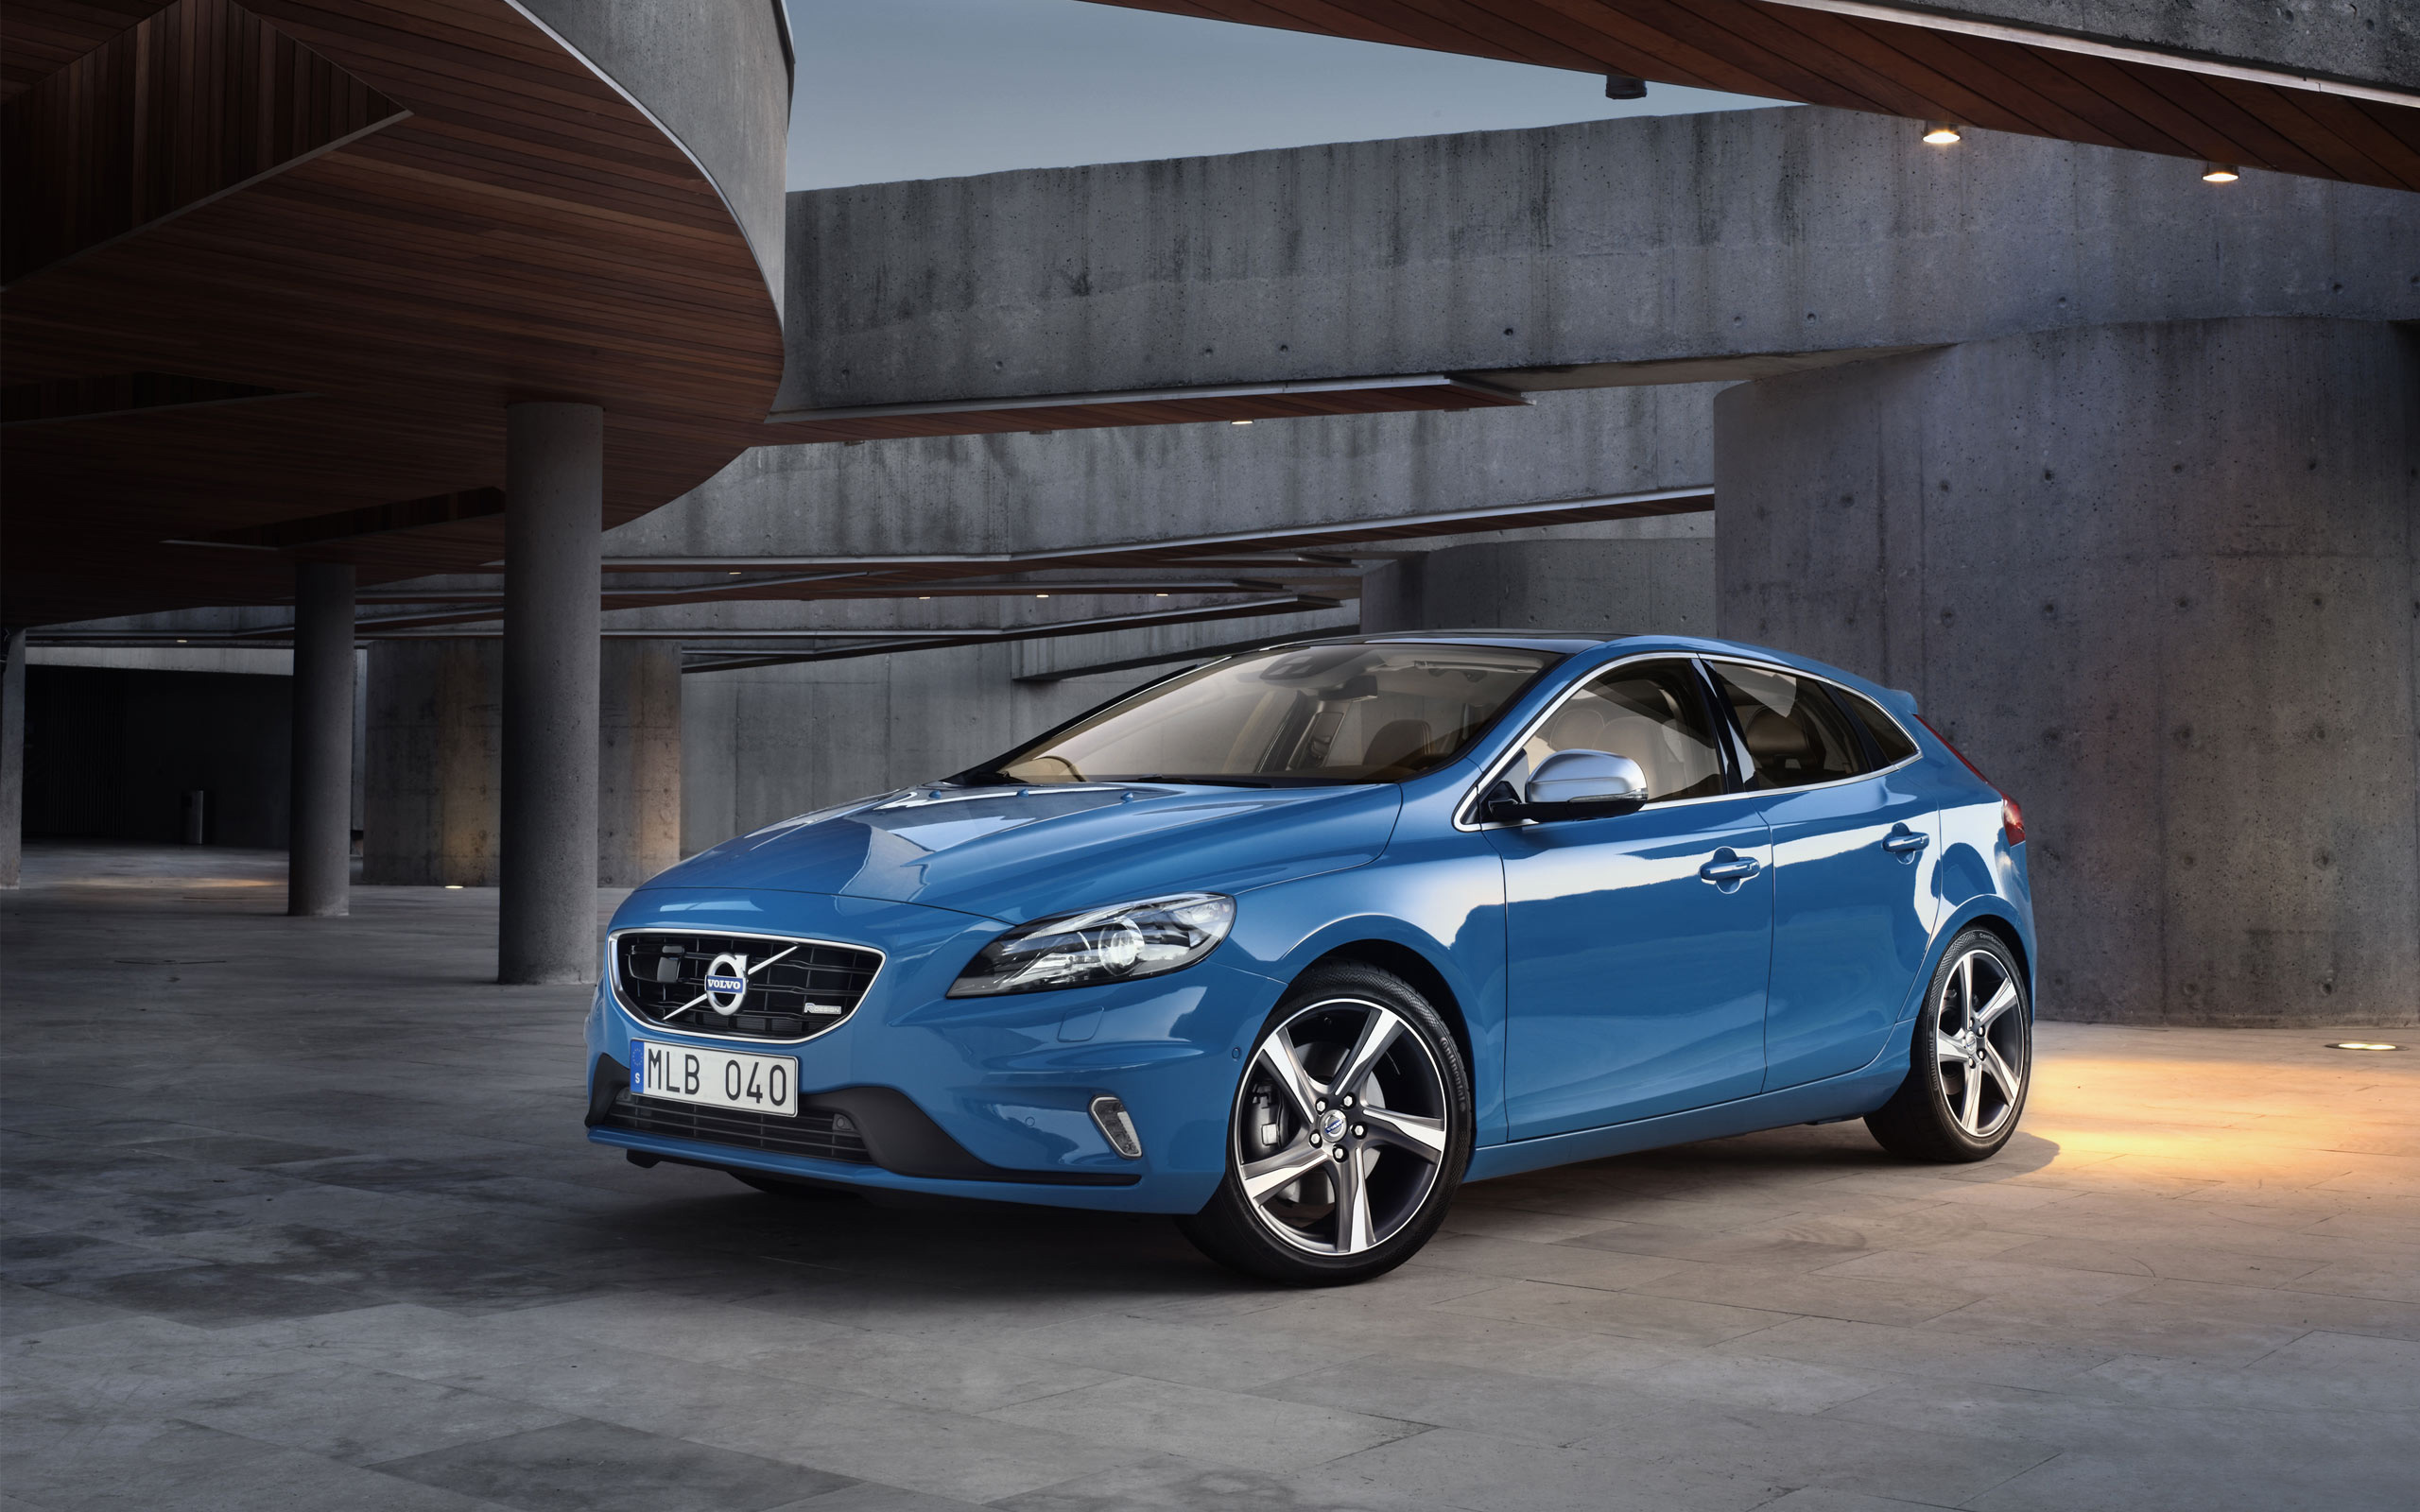 volvo v40 2013 wallpaper hd car wallpapers. Black Bedroom Furniture Sets. Home Design Ideas